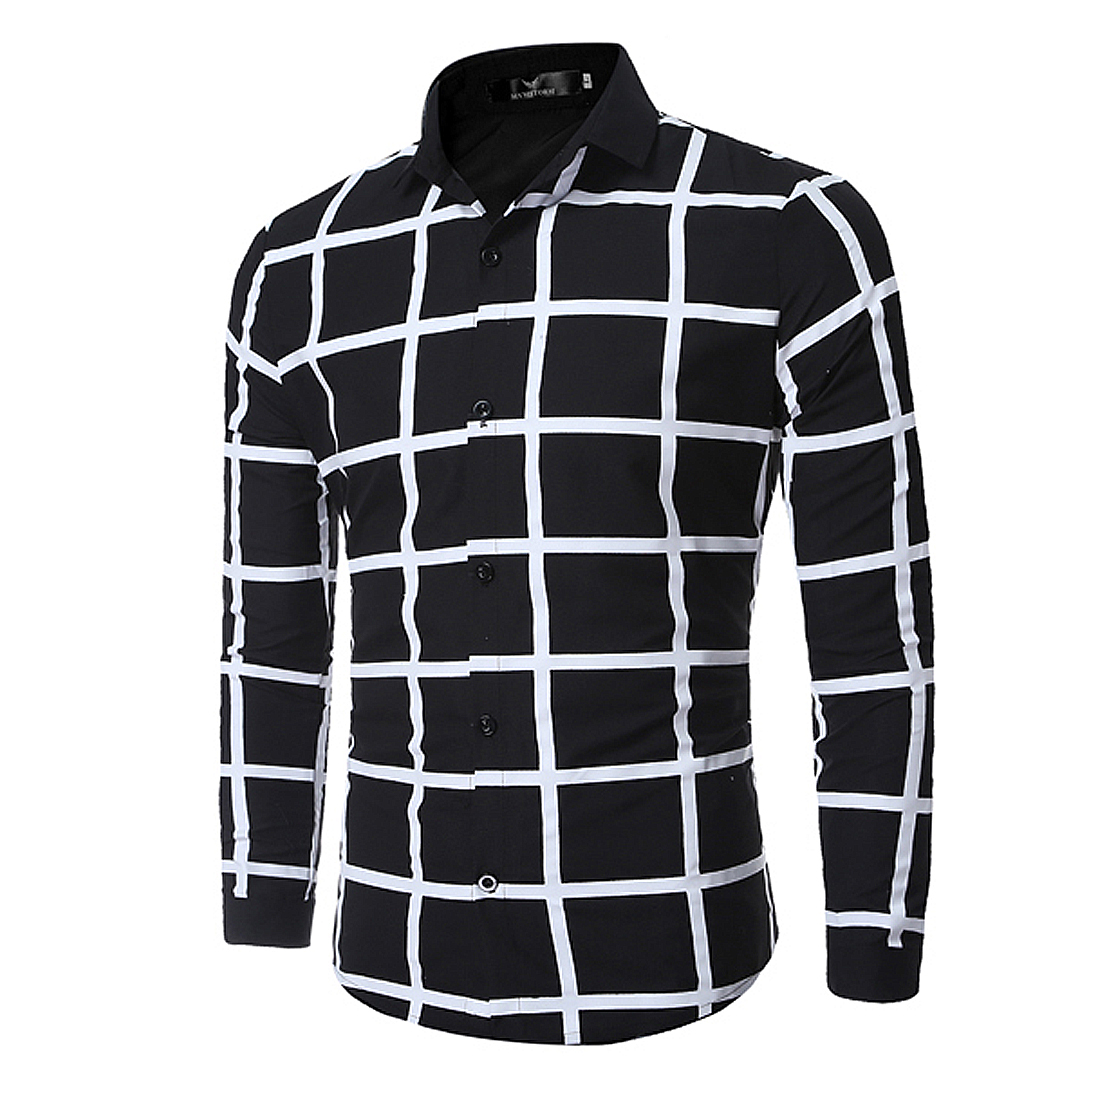 Mens White Plaid Shirts Promotion-Shop for Promotional Mens White ...